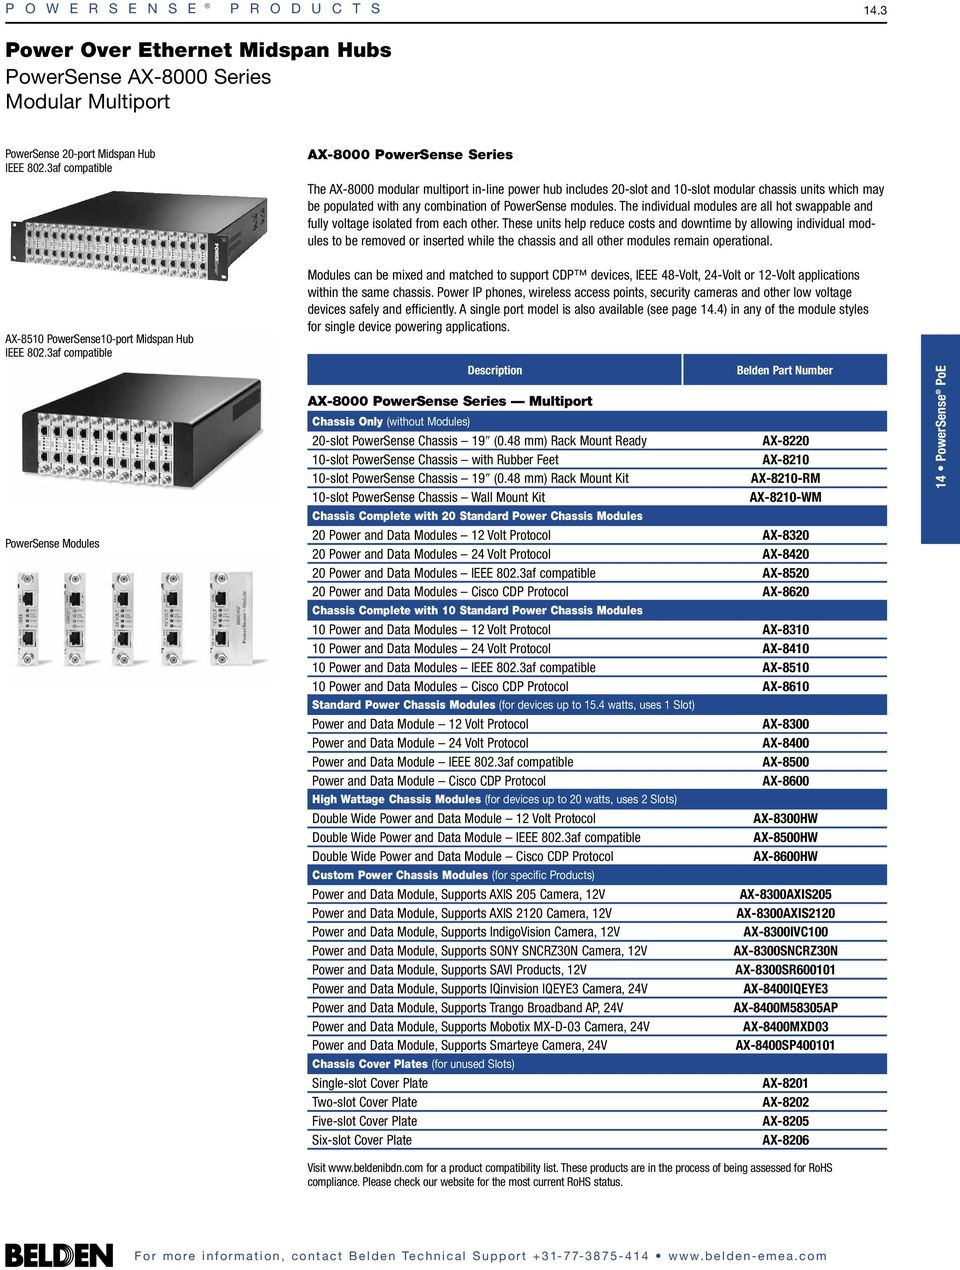 Powersense Products Table Of Contents Pdf Poweroverethernet Poe On Industrialbased Networking Fig 2 20 Slot And 10 Modular Chassis Units Which May Be Populated With Any